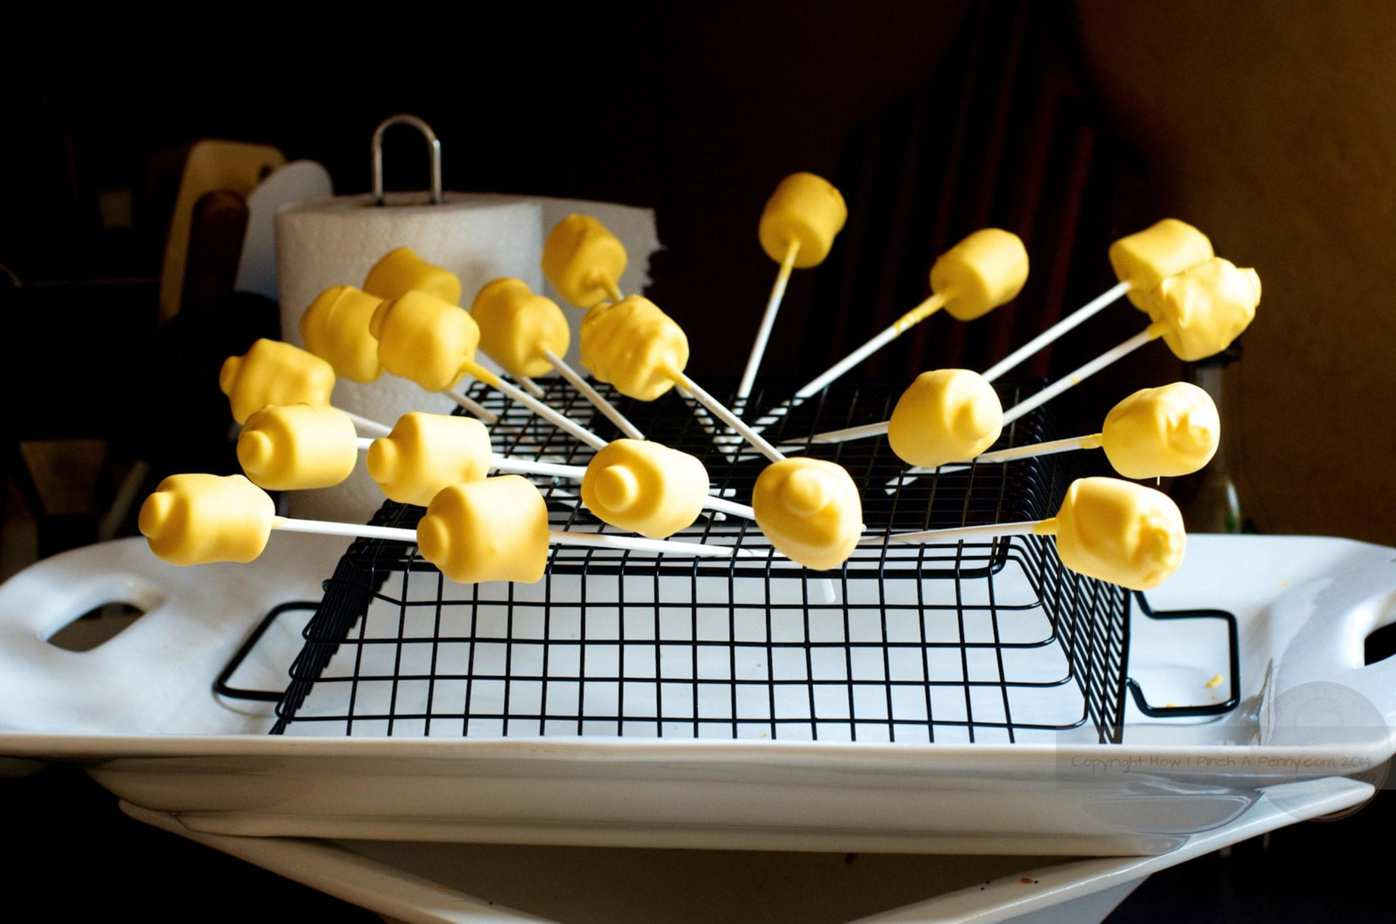 Lego Head Marshmallow Pops drying on a rack